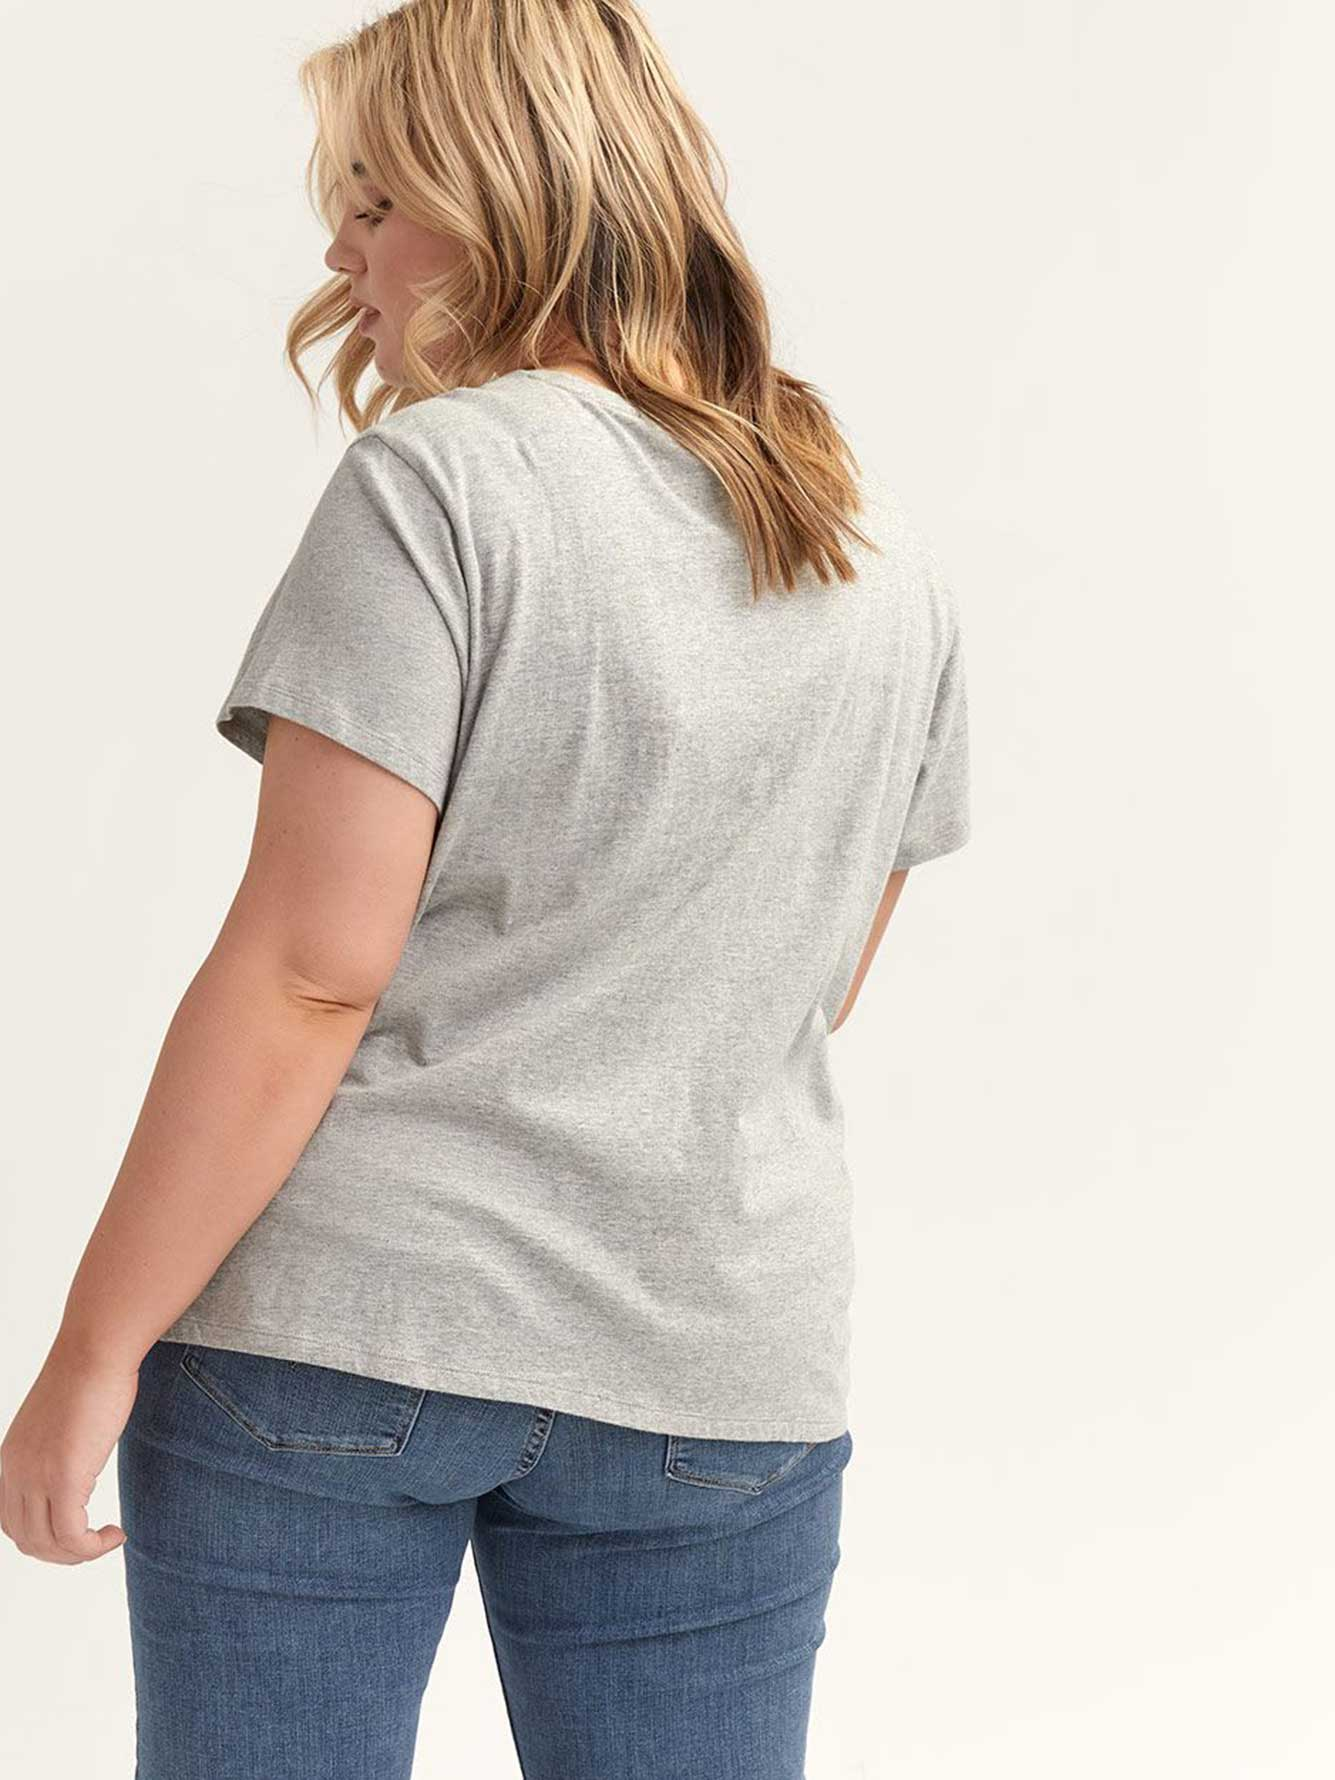 Levi's Perfect Batwing Logo T-Shirt